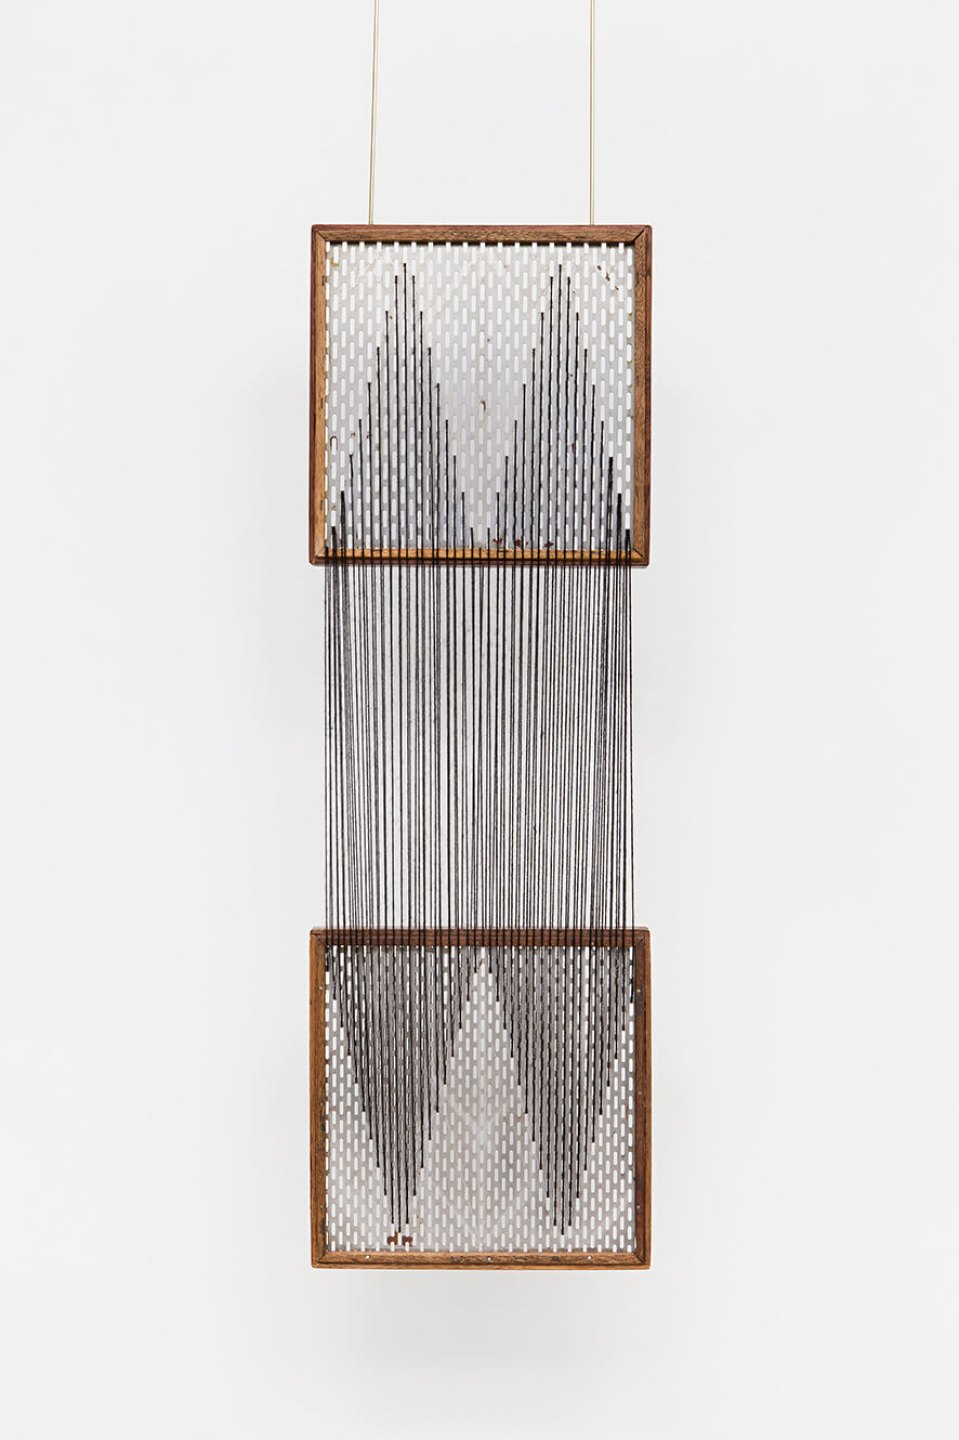 Paloma Bosquê, <em>On provisory interaction (geometry of relations #1)</em>, 2015, coffee sieve, wool and brass rods, 92,5 × 30 cm - Mendes Wood DM